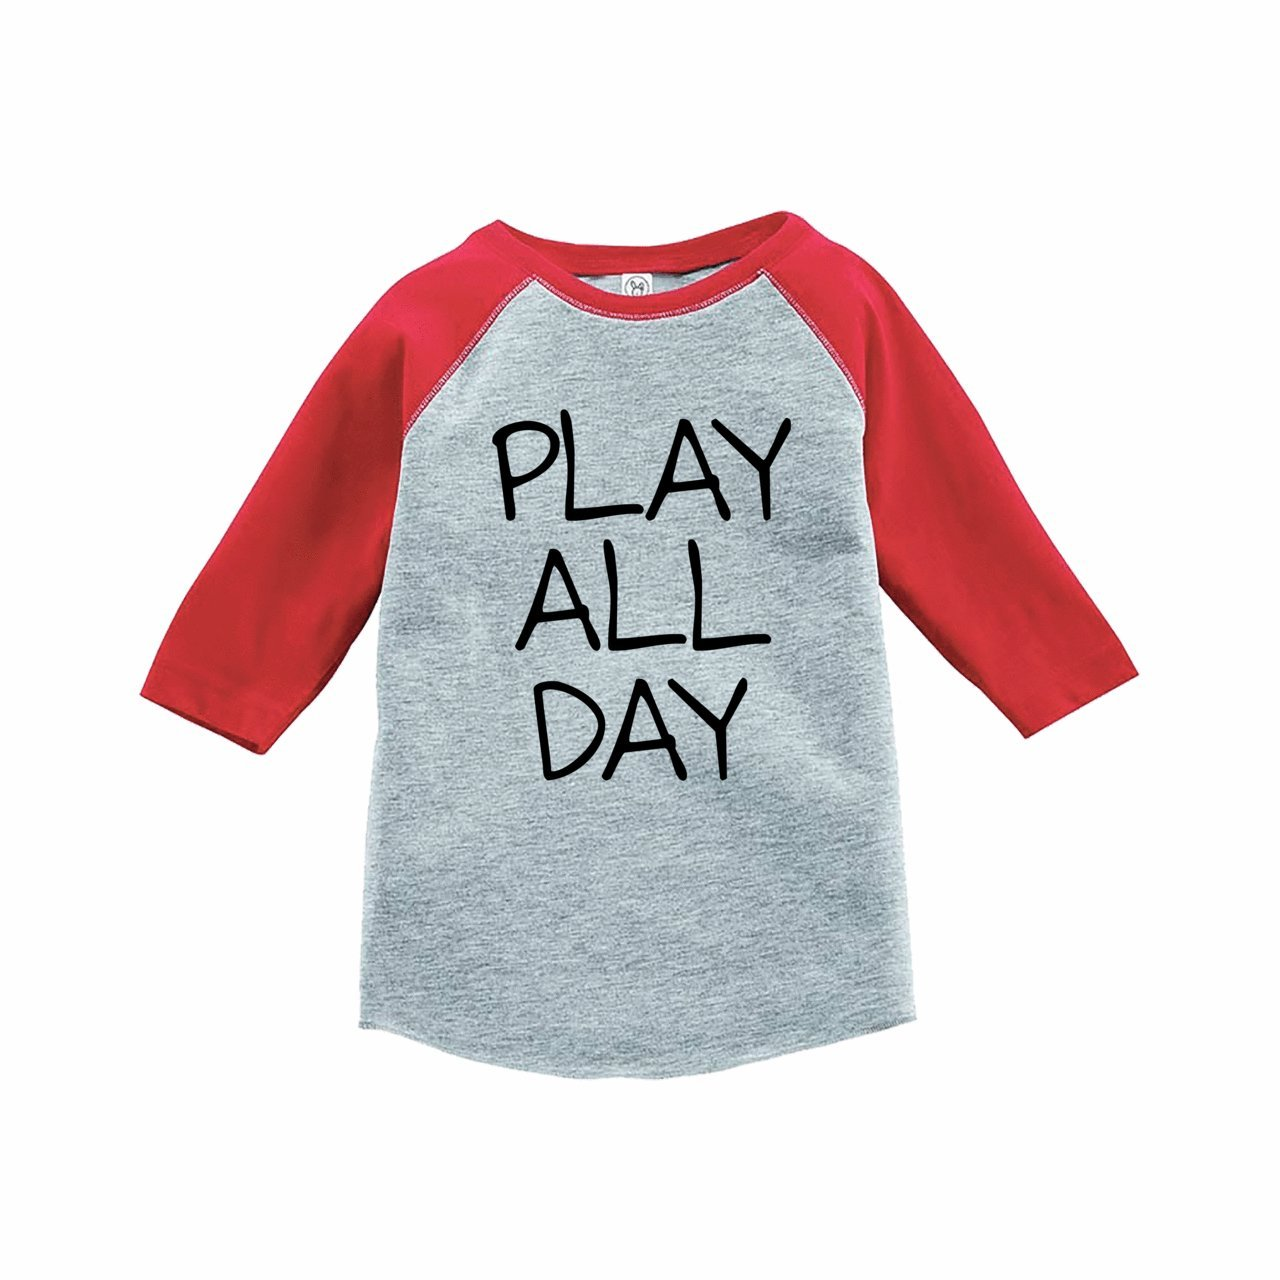 7 ate 9 Apparel Funny Kids Play All Day Baseball Tee Red